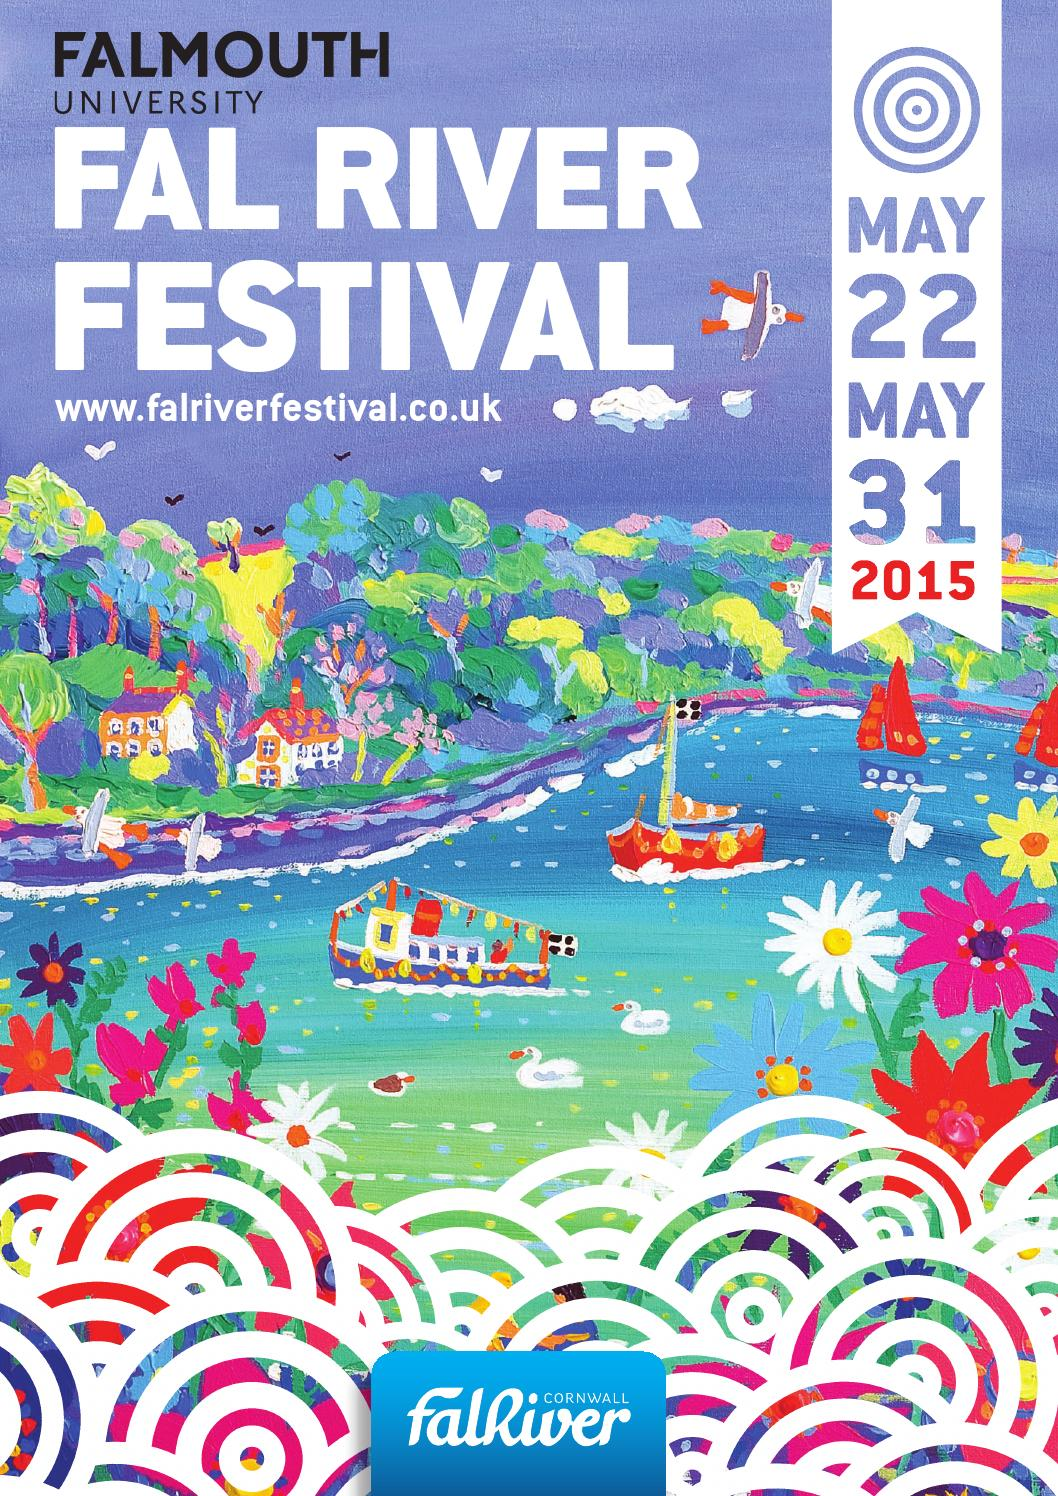 The collectors olivey place mylor bridge nr falmouth cornwall uk - Falmouth University Fal River Festival Programme 2015 By Fal River Cornwall Issuu